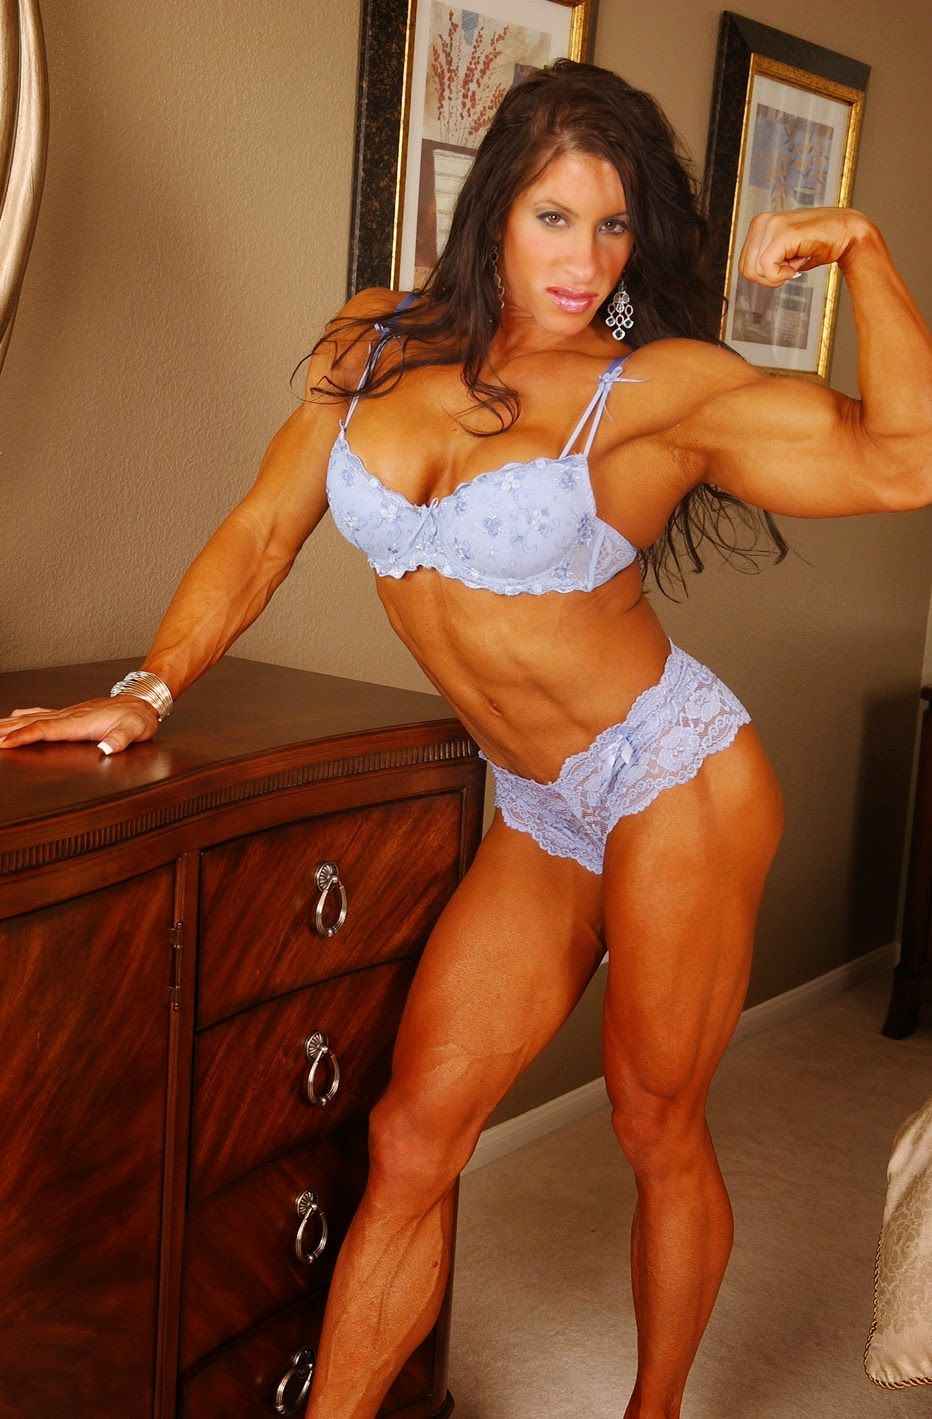 Muscle Women Porn pinchuck on things i like 3 | muscle women, physically